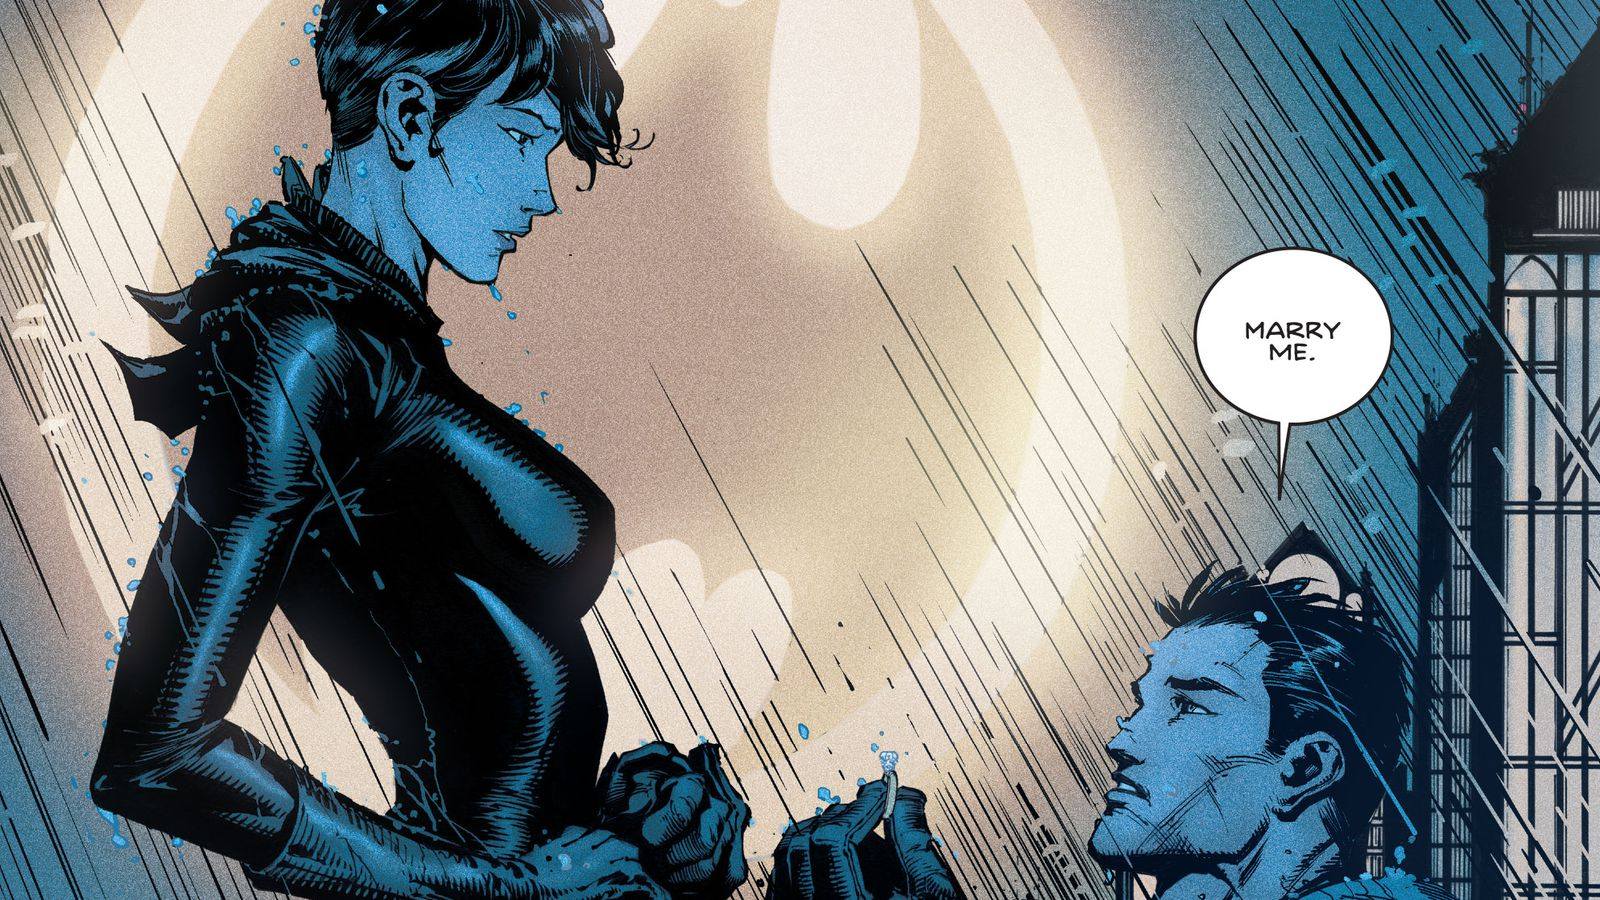 Getting married or no, Batmans next story is something